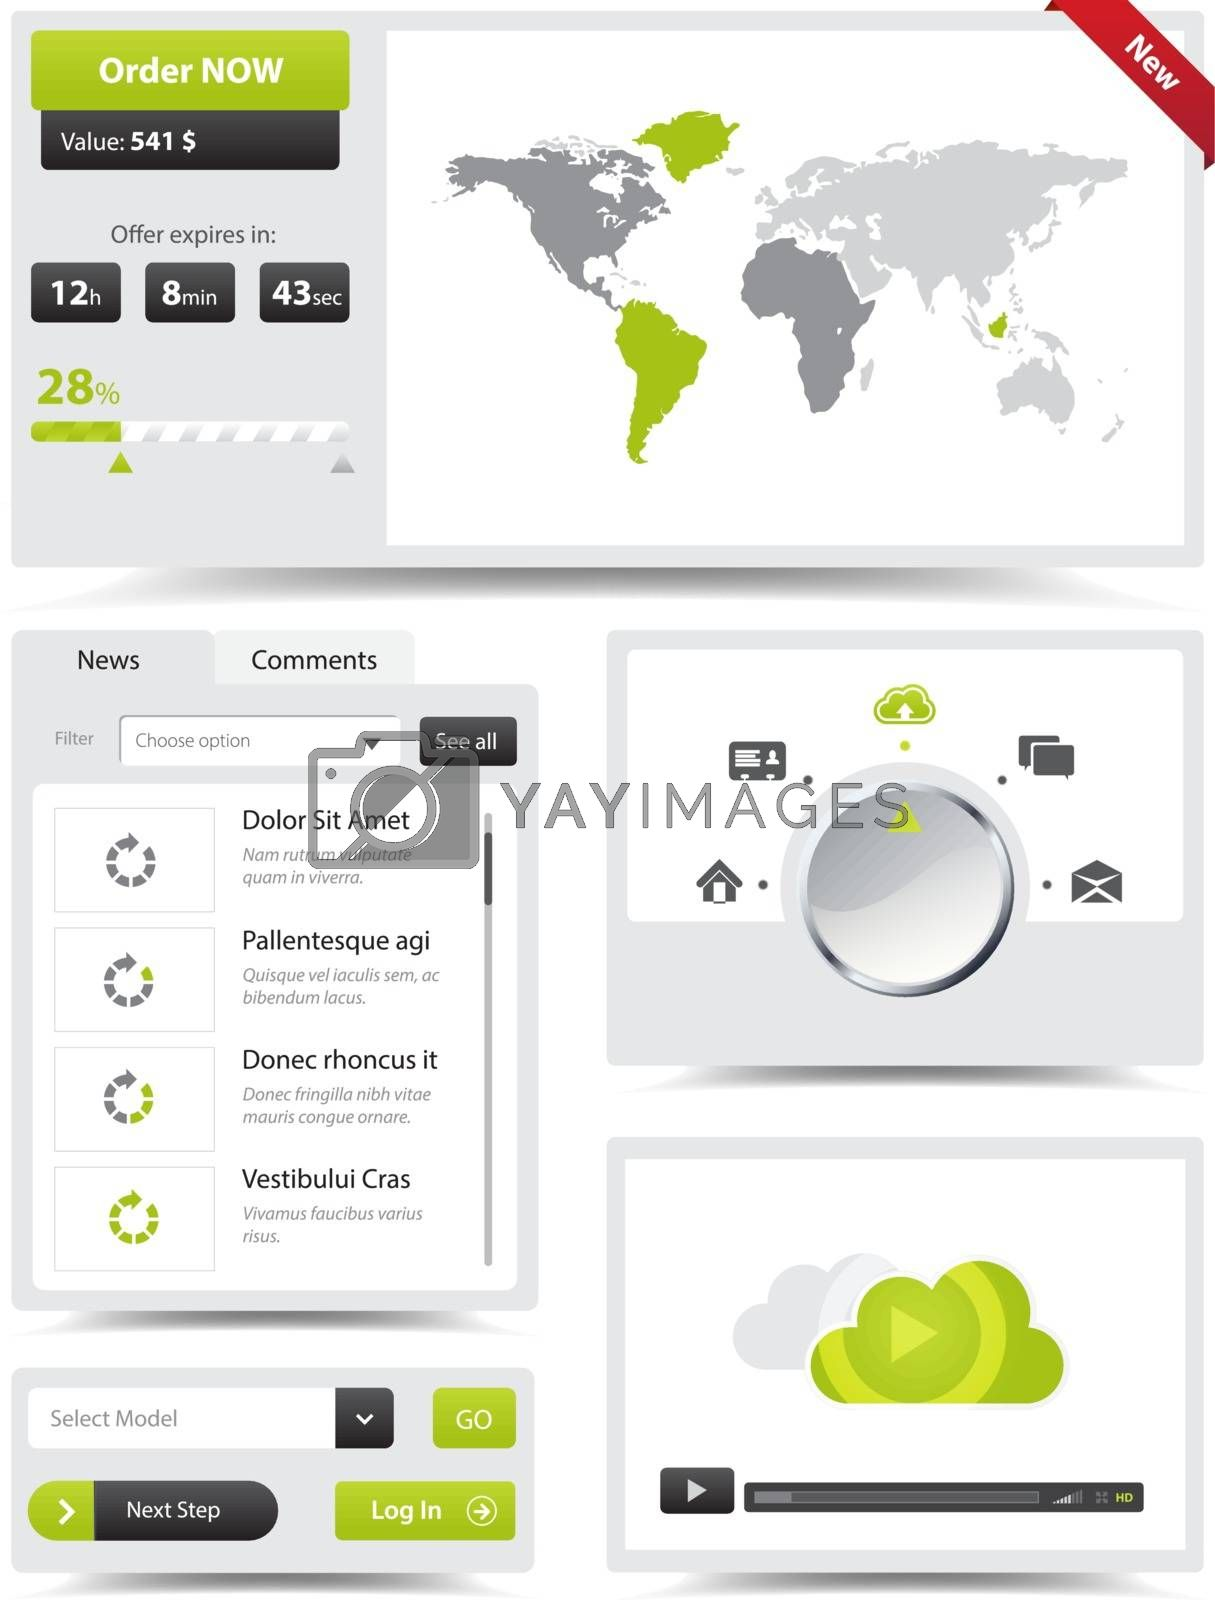 This image is a vector file representing a collection of web design elements.